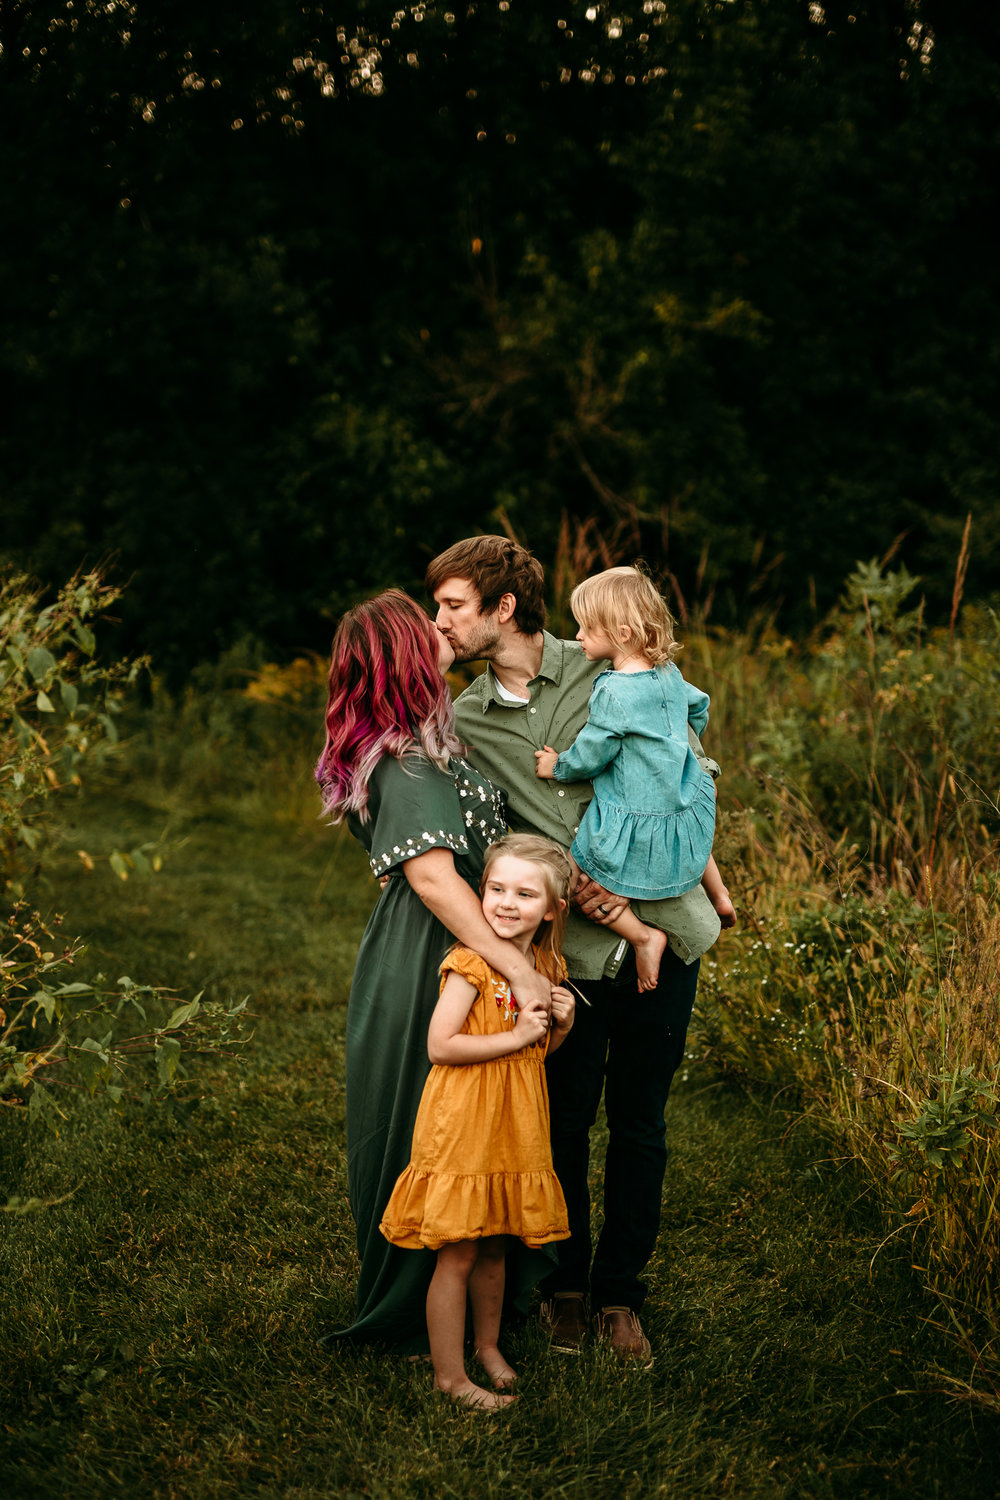 FREESE FAMILY MADE BELOVED PHOTOGRAPHY-18.jpg